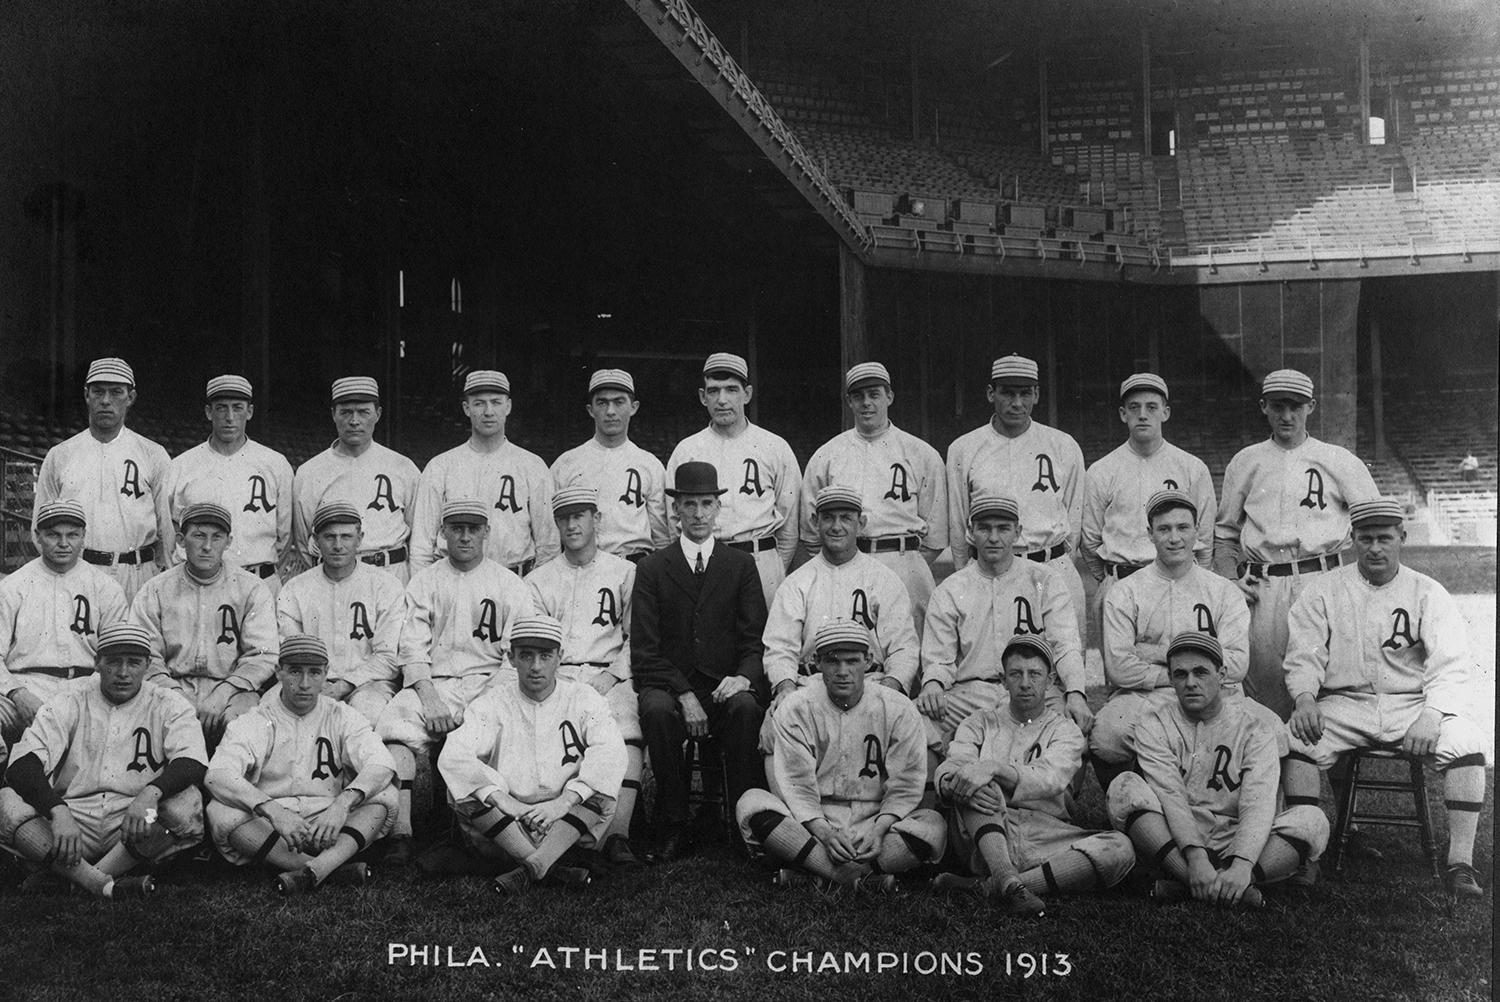 The Philadelphia Athletics pictured in 1913, when they won their third World Series title. (National Baseball Hall of Fame and Museum)